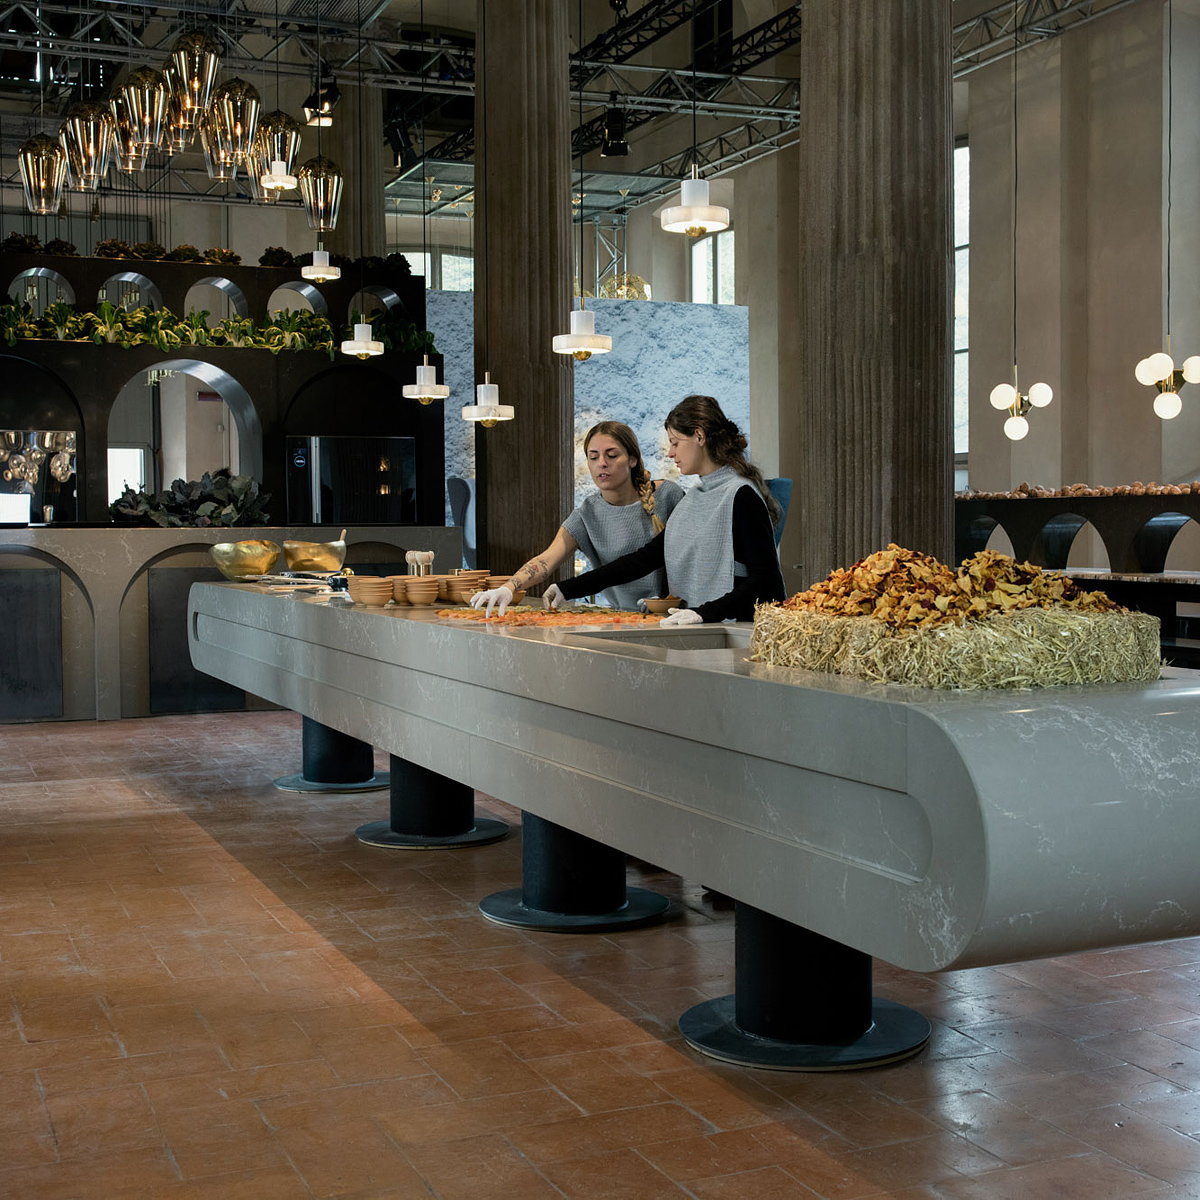 The Restaurant by Caesarstone and Tom Dixon at Salone del Mobile